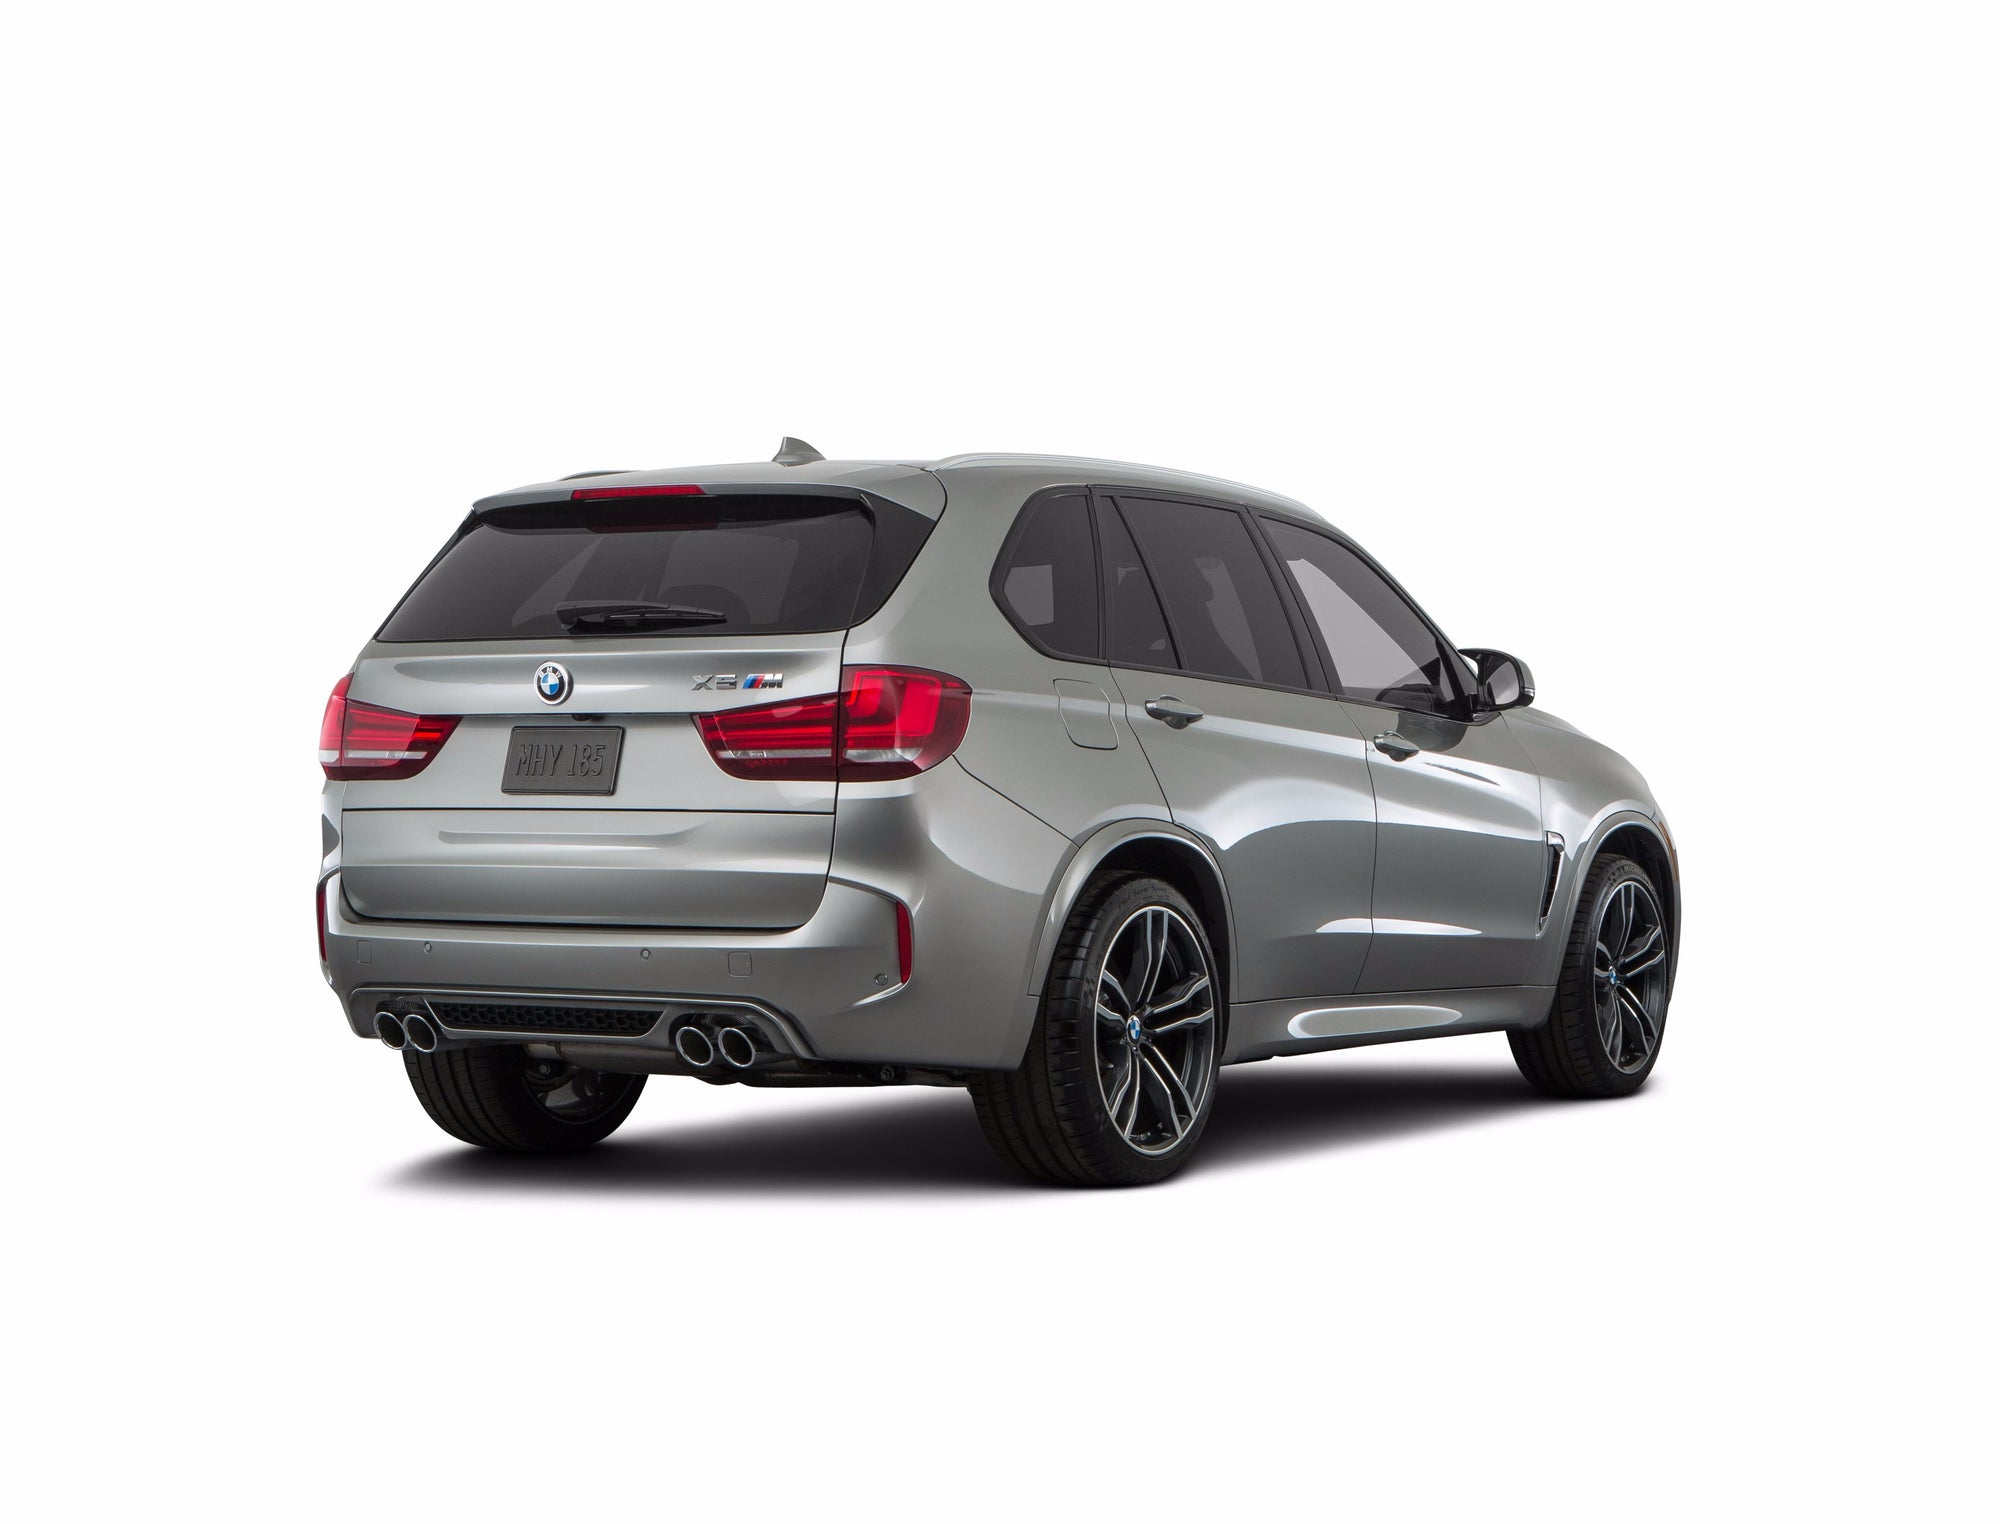 BMW X5 hitch- MADE to be HIDDEN  Increase tow capacity!